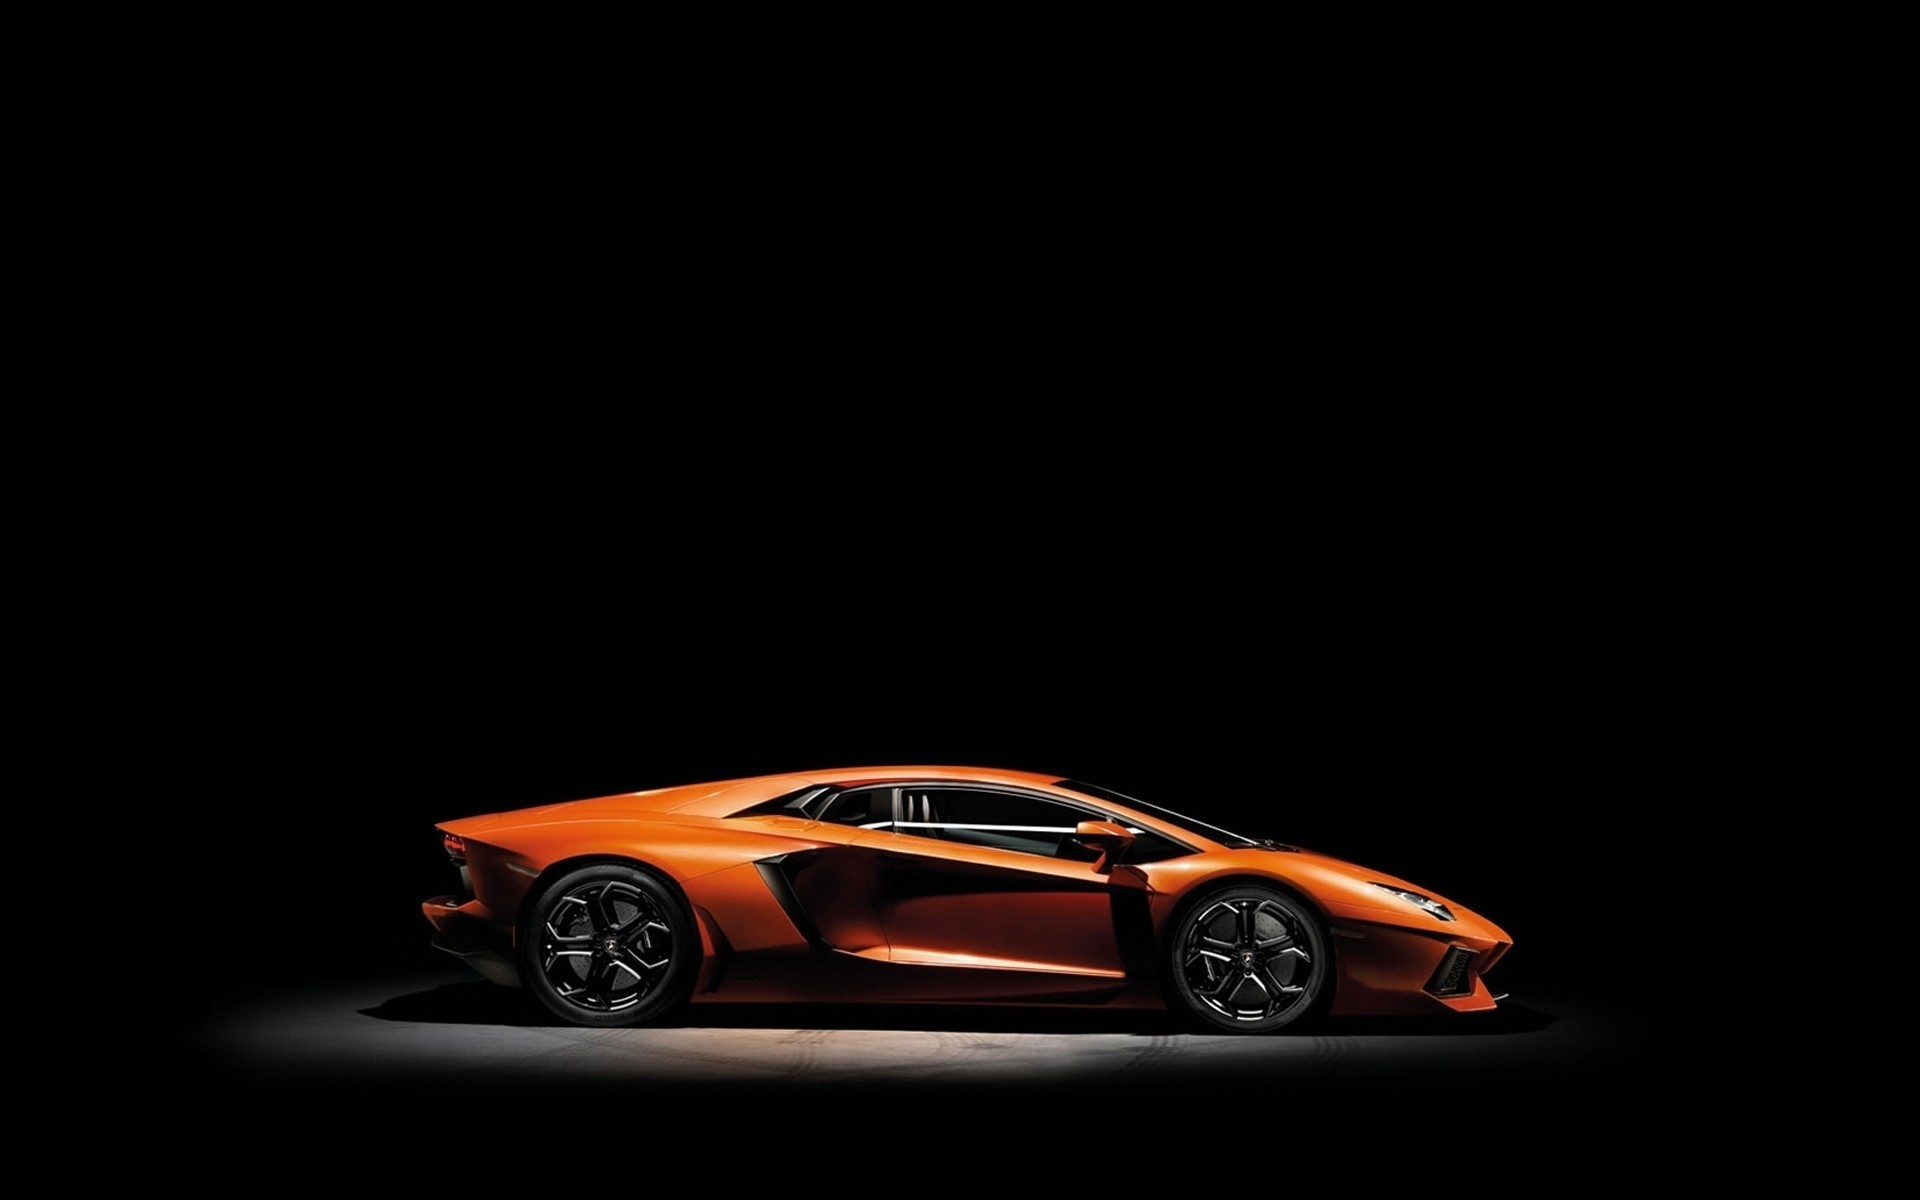 cars Lamborghini HD Wallpaper